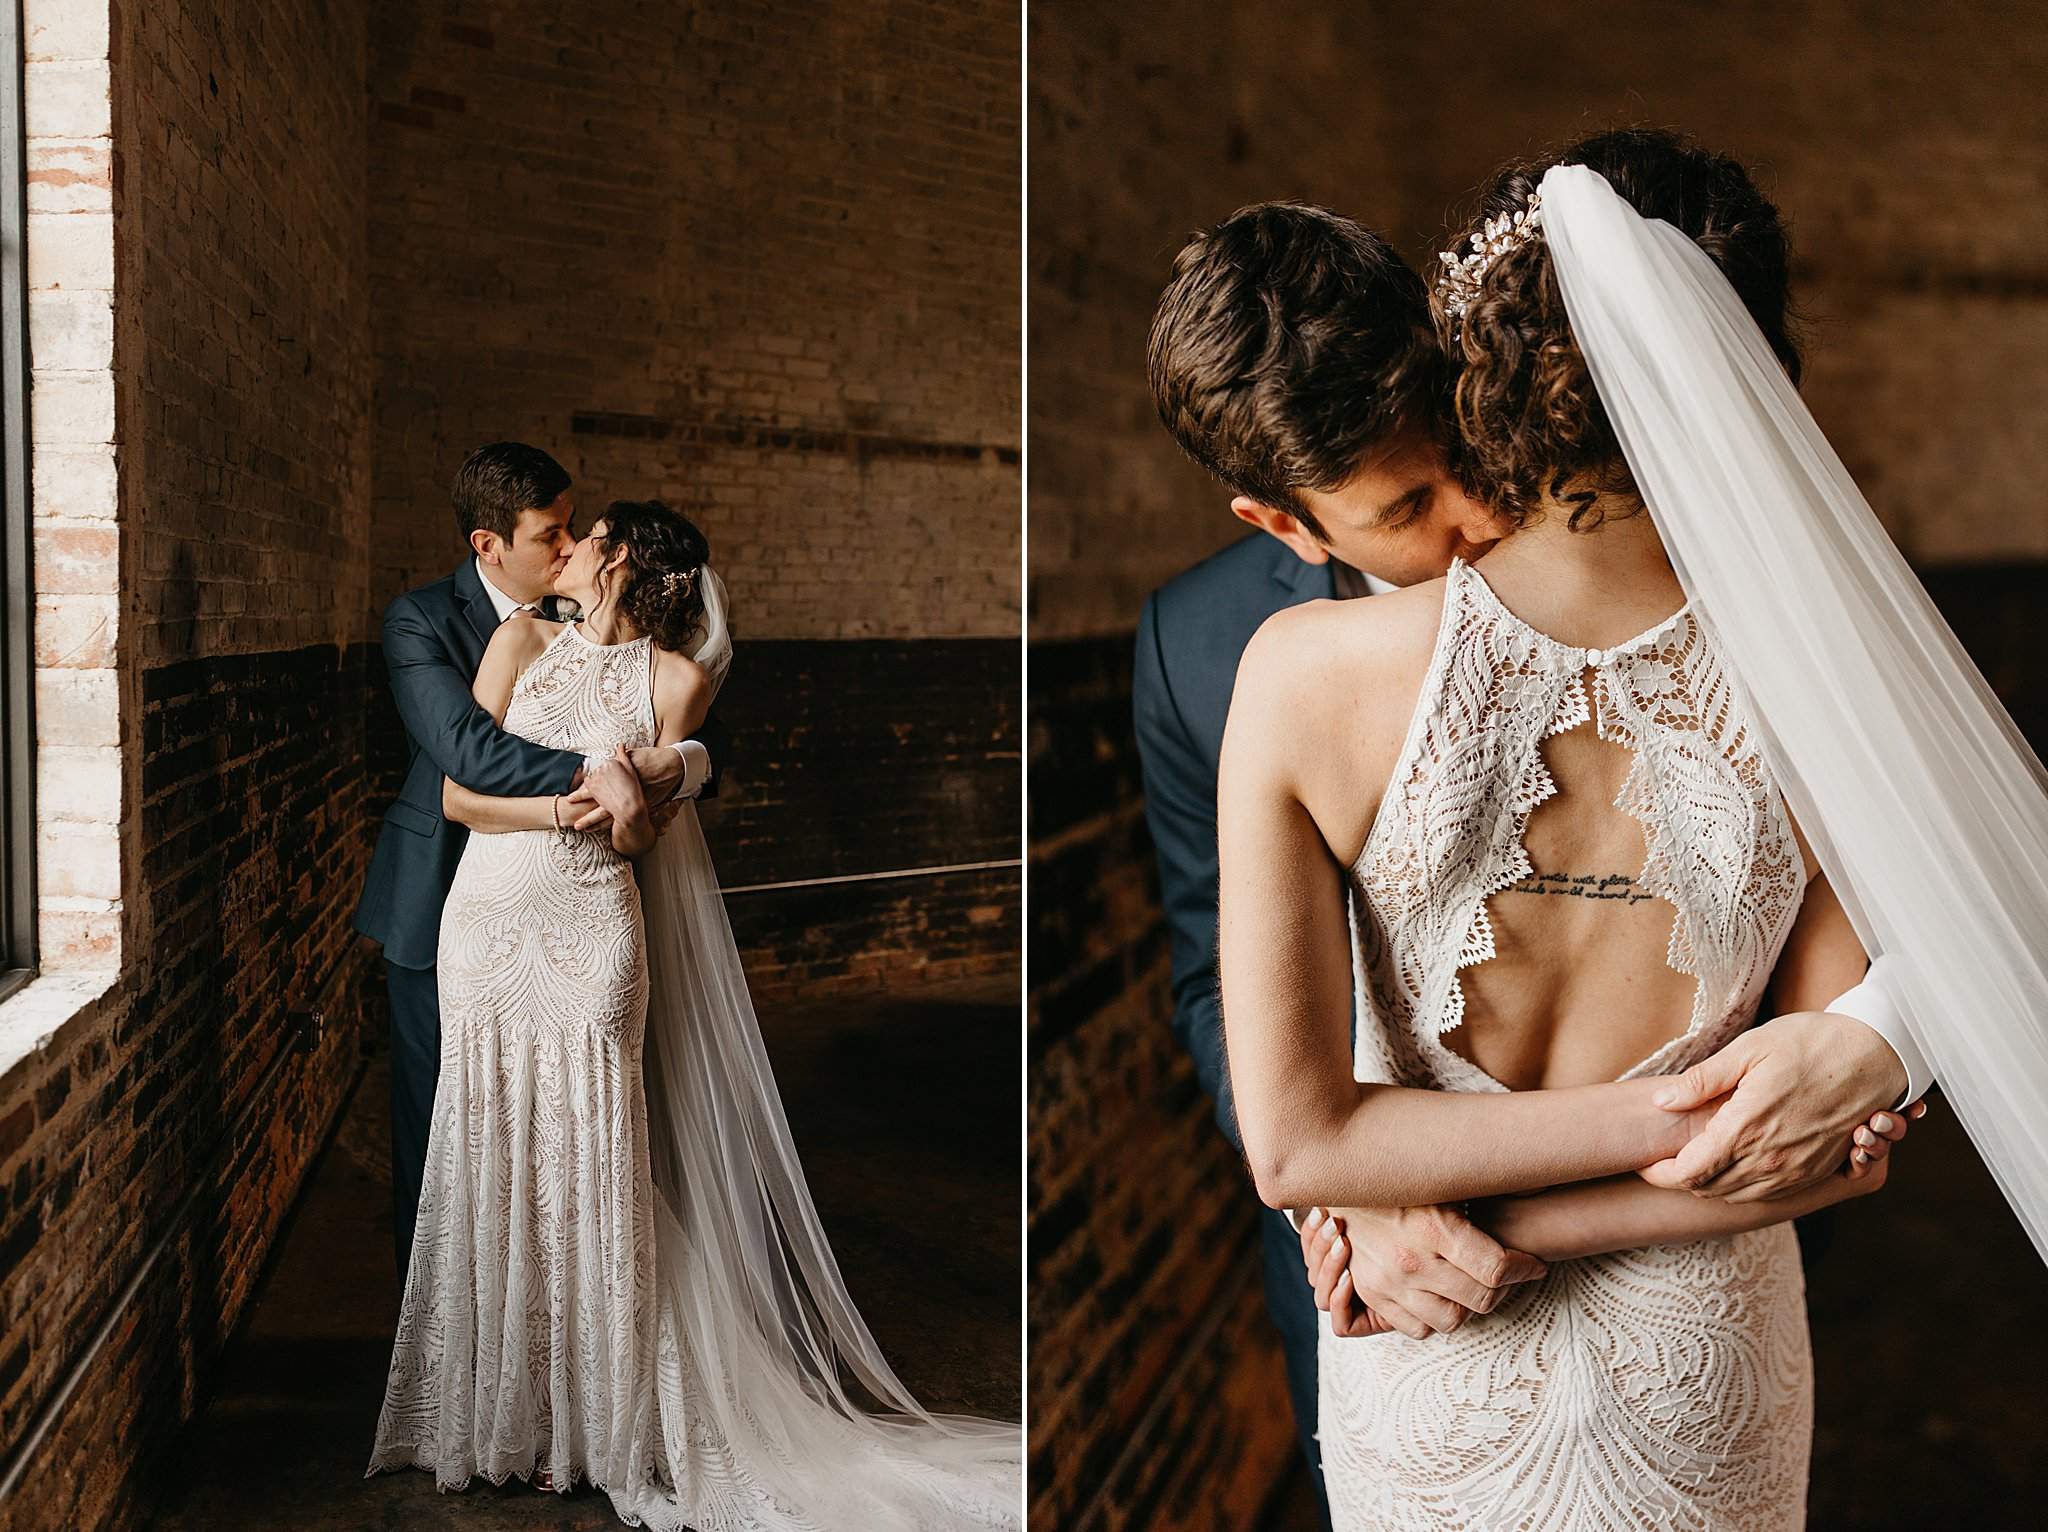 Wilderlove Co_Wedding Photographer_Industrial Wedding_Jewish Wedding_Dallas Texas Wedding_Brake & Clutch Warehouse_North Texas Photographer_0025.jpg